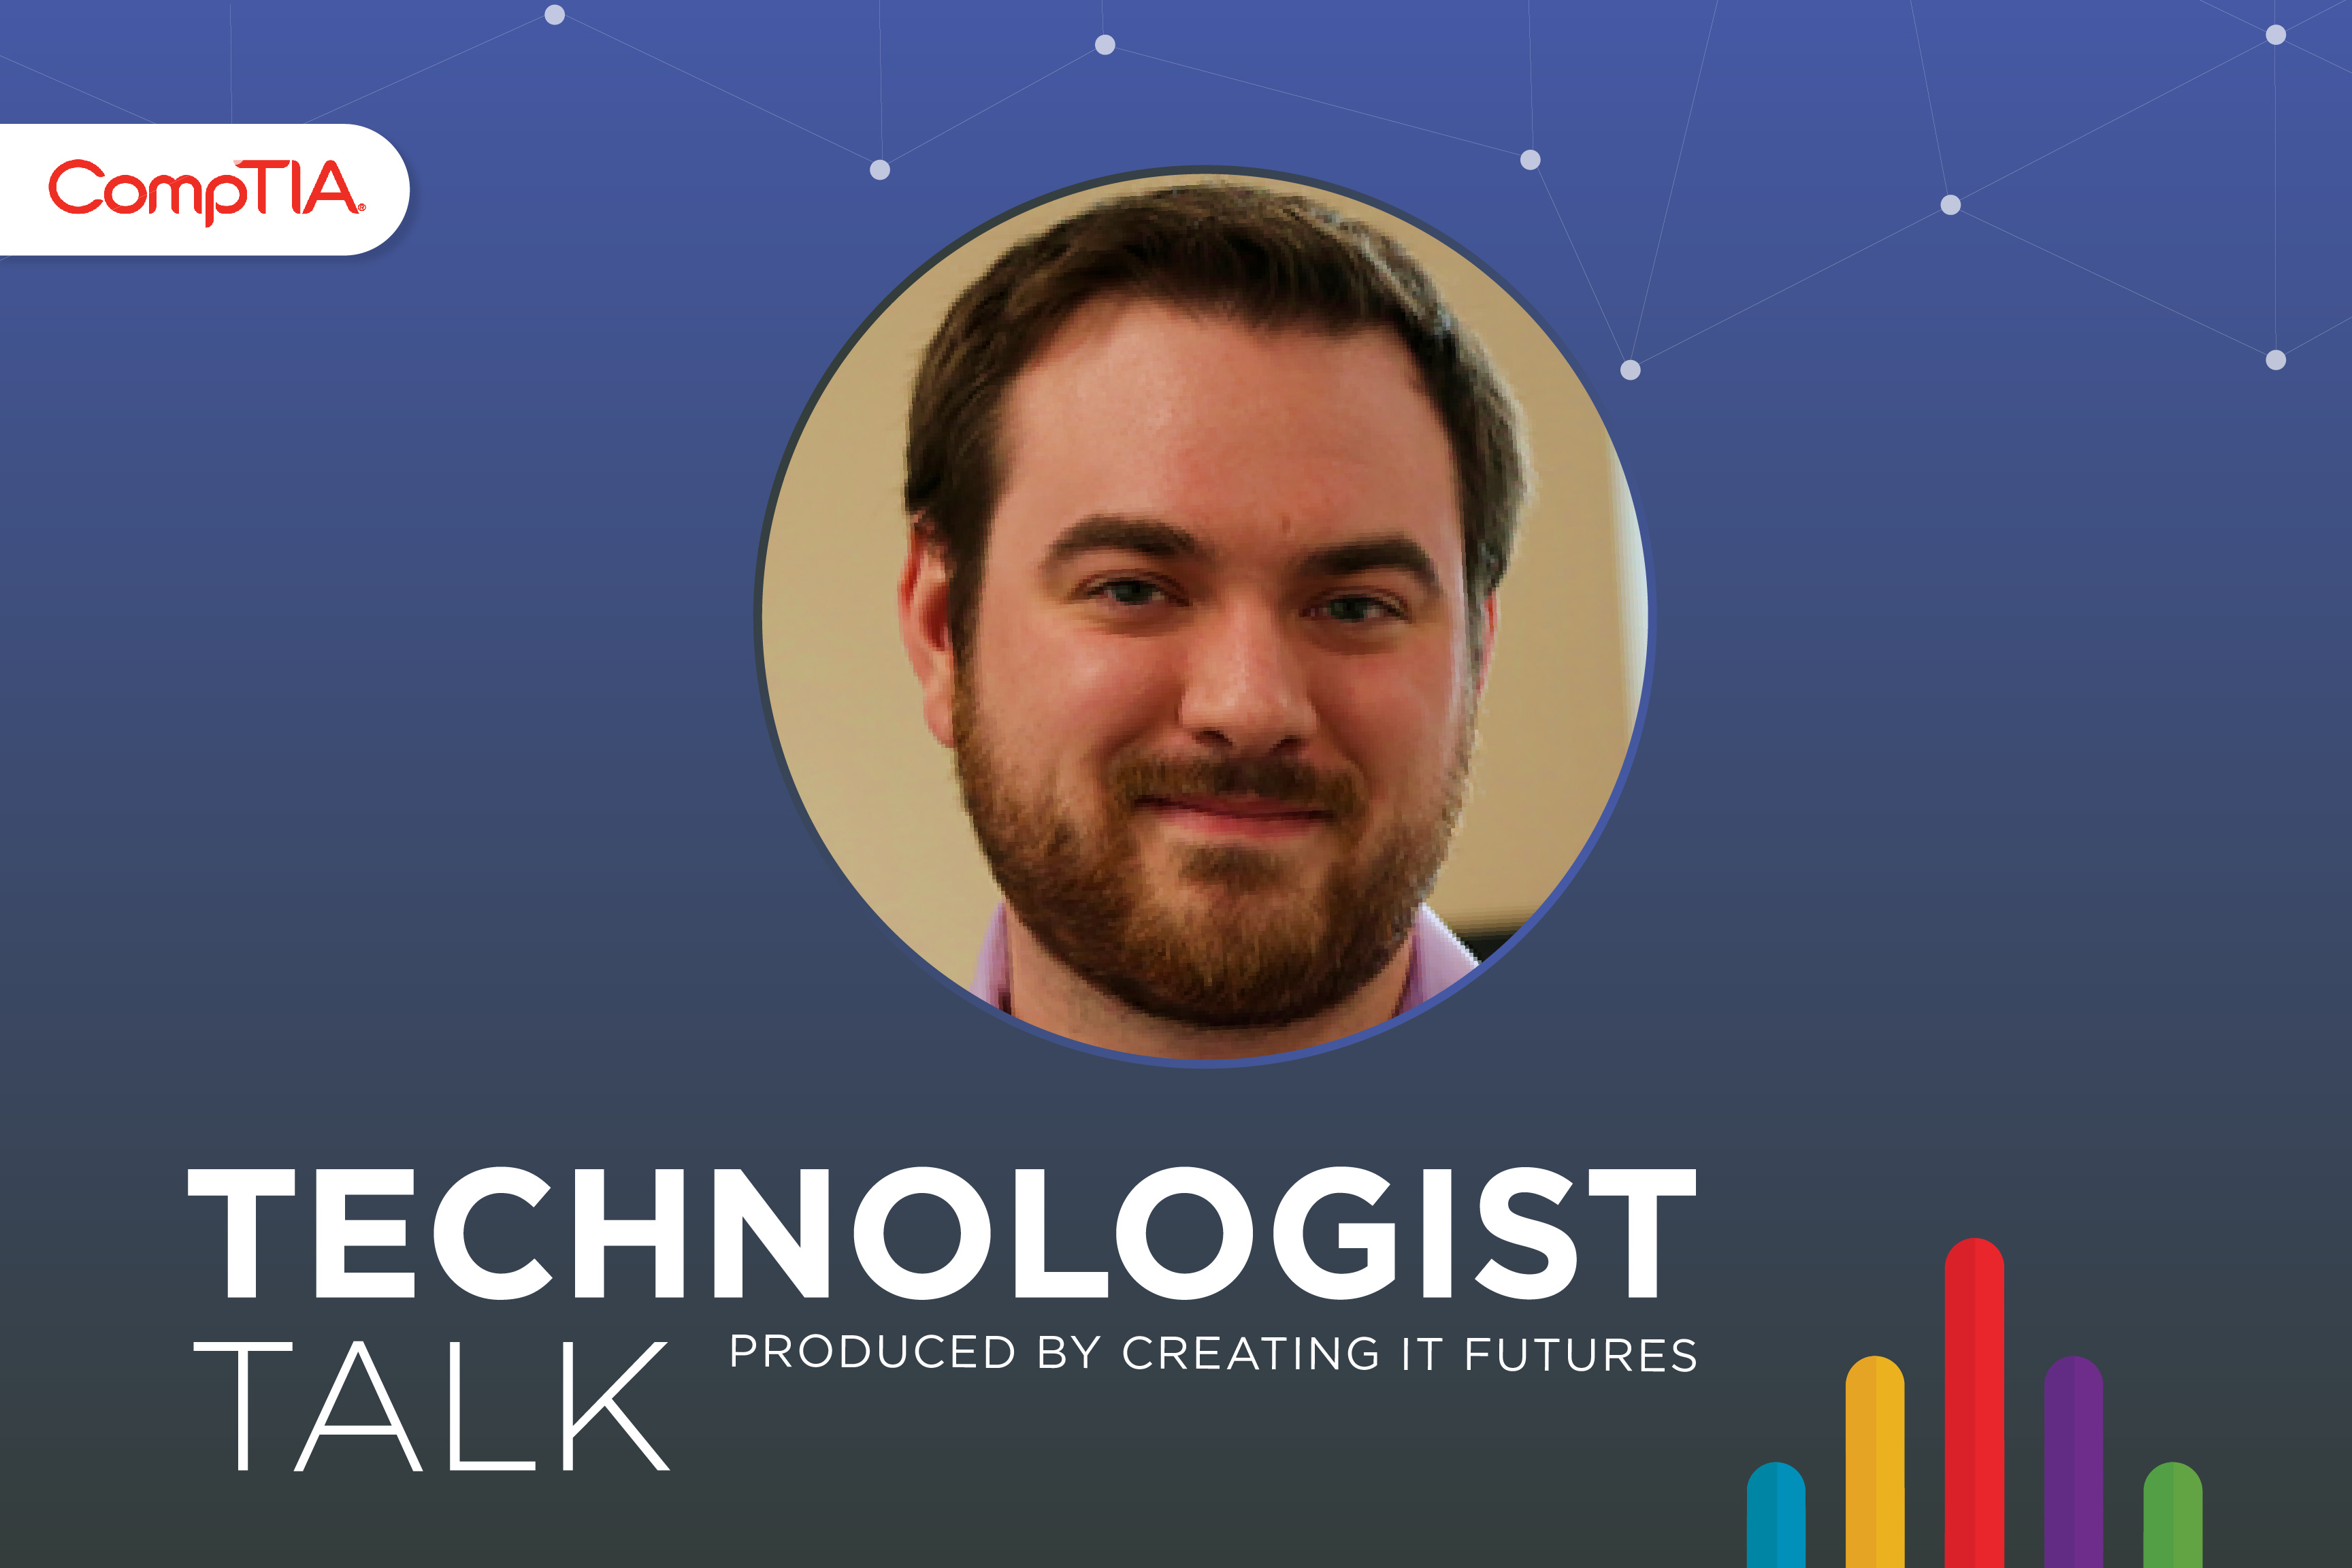 Ben Rohling on Technologist Talk